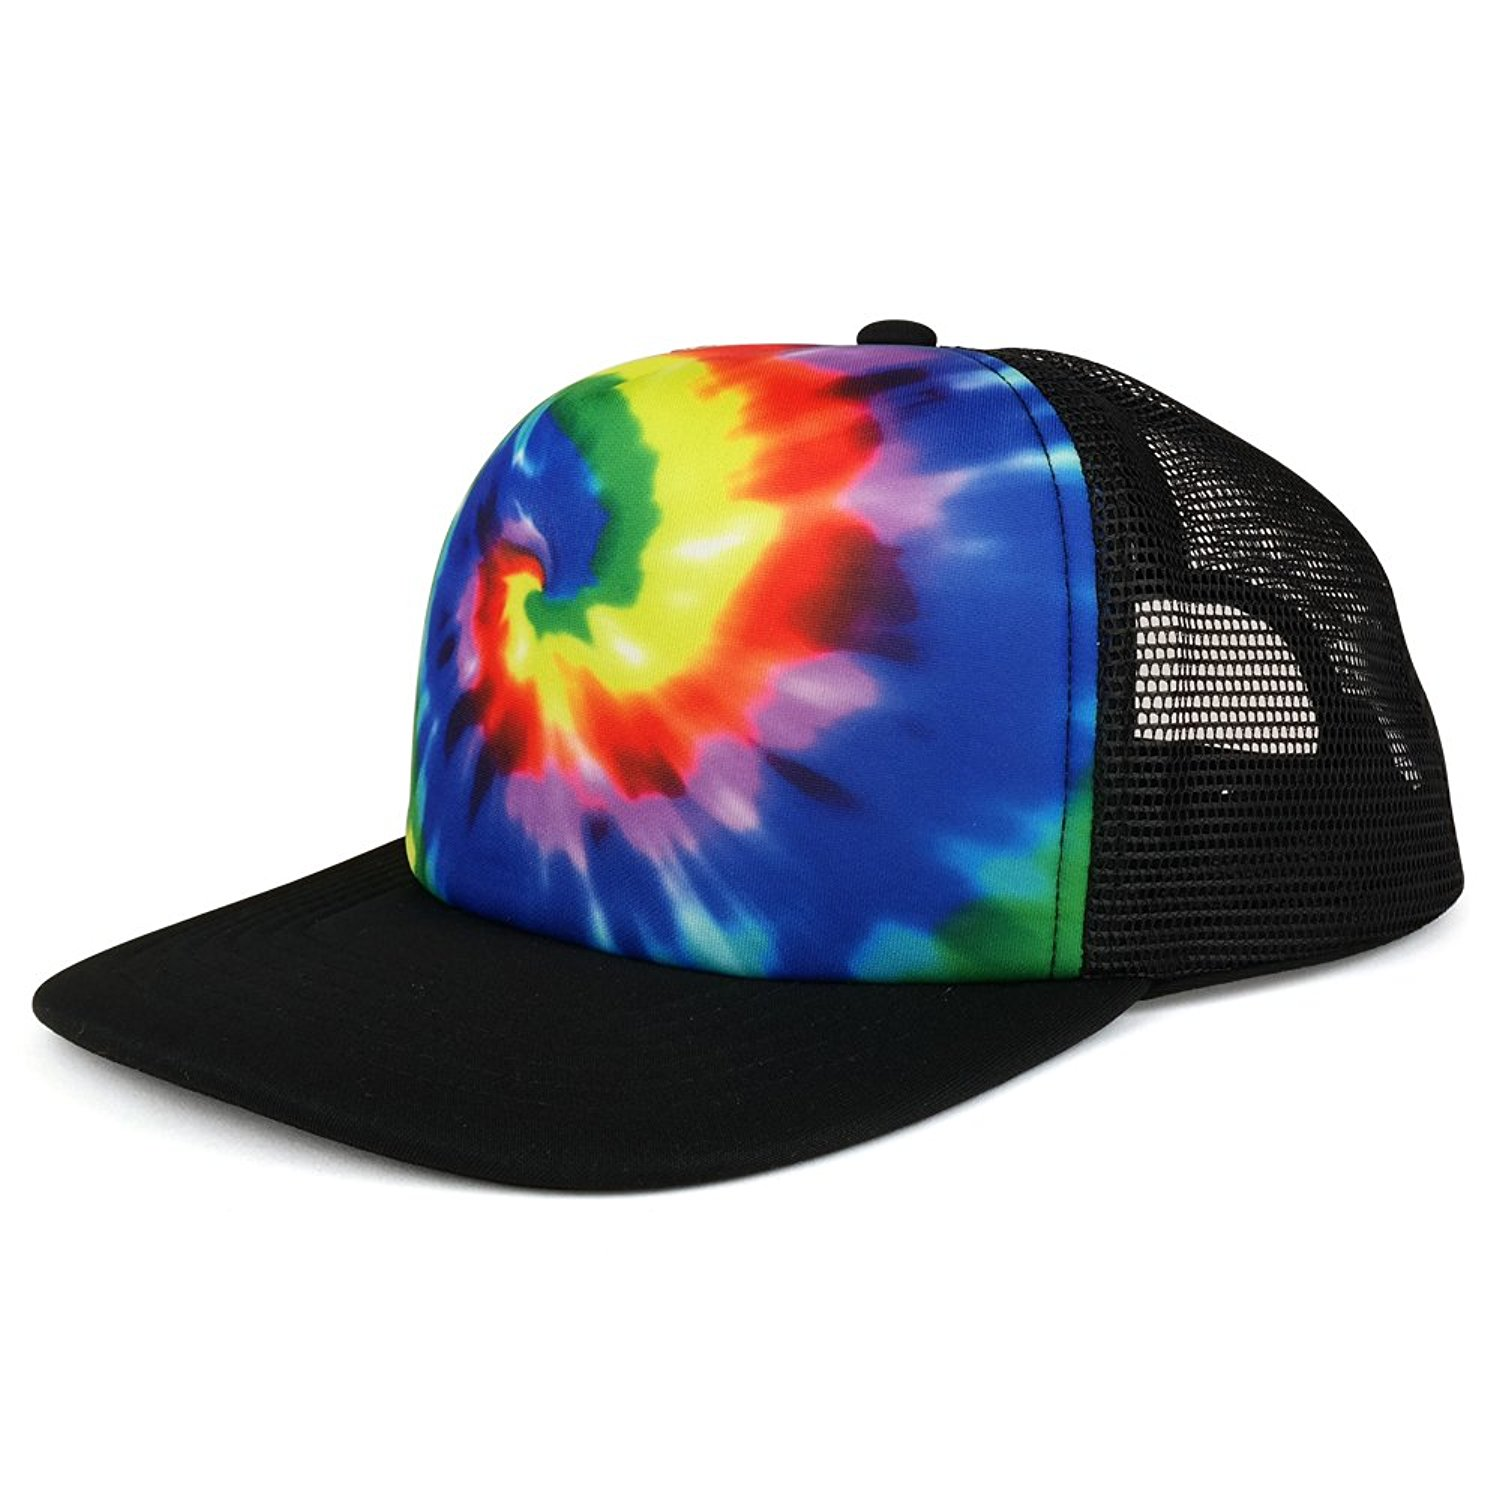 061cb9eb3 Cheap Foam Printed Trucker Cap, find Foam Printed Trucker Cap deals ...